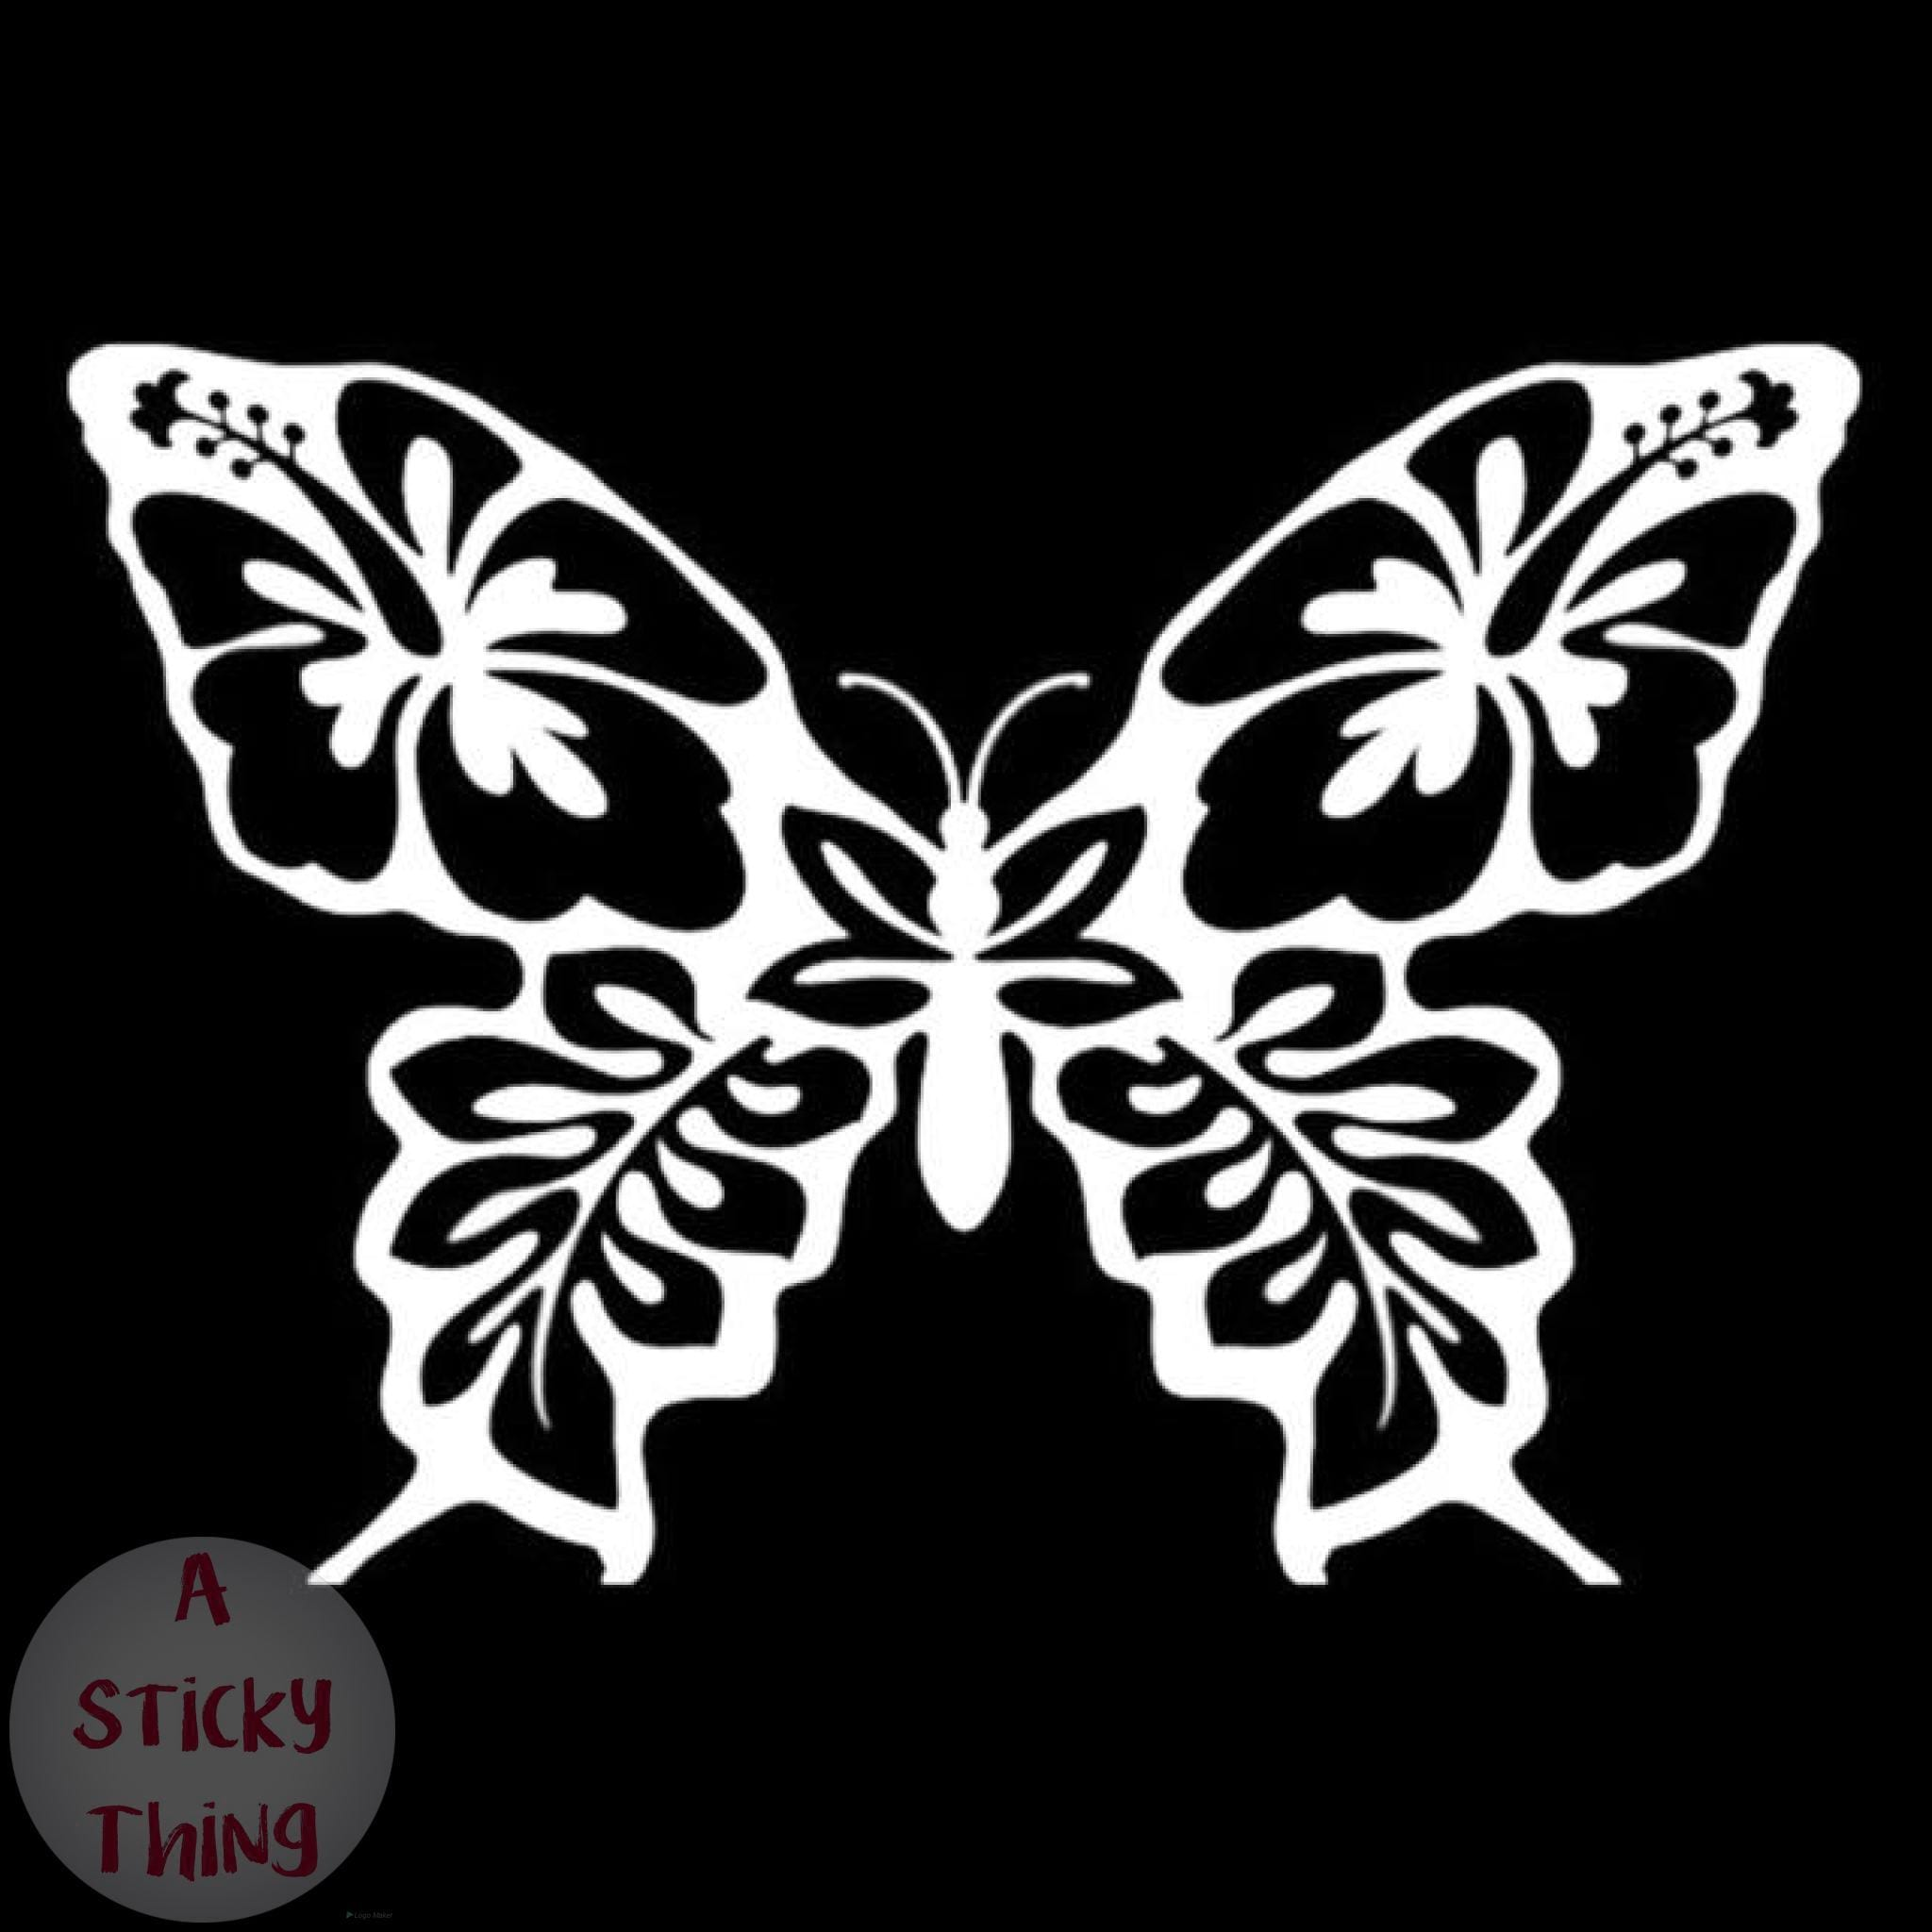 A sticky thing vinyl car styling butterfly hibiscus flower creative window decals car sticker blacksilver izmirmasajfo